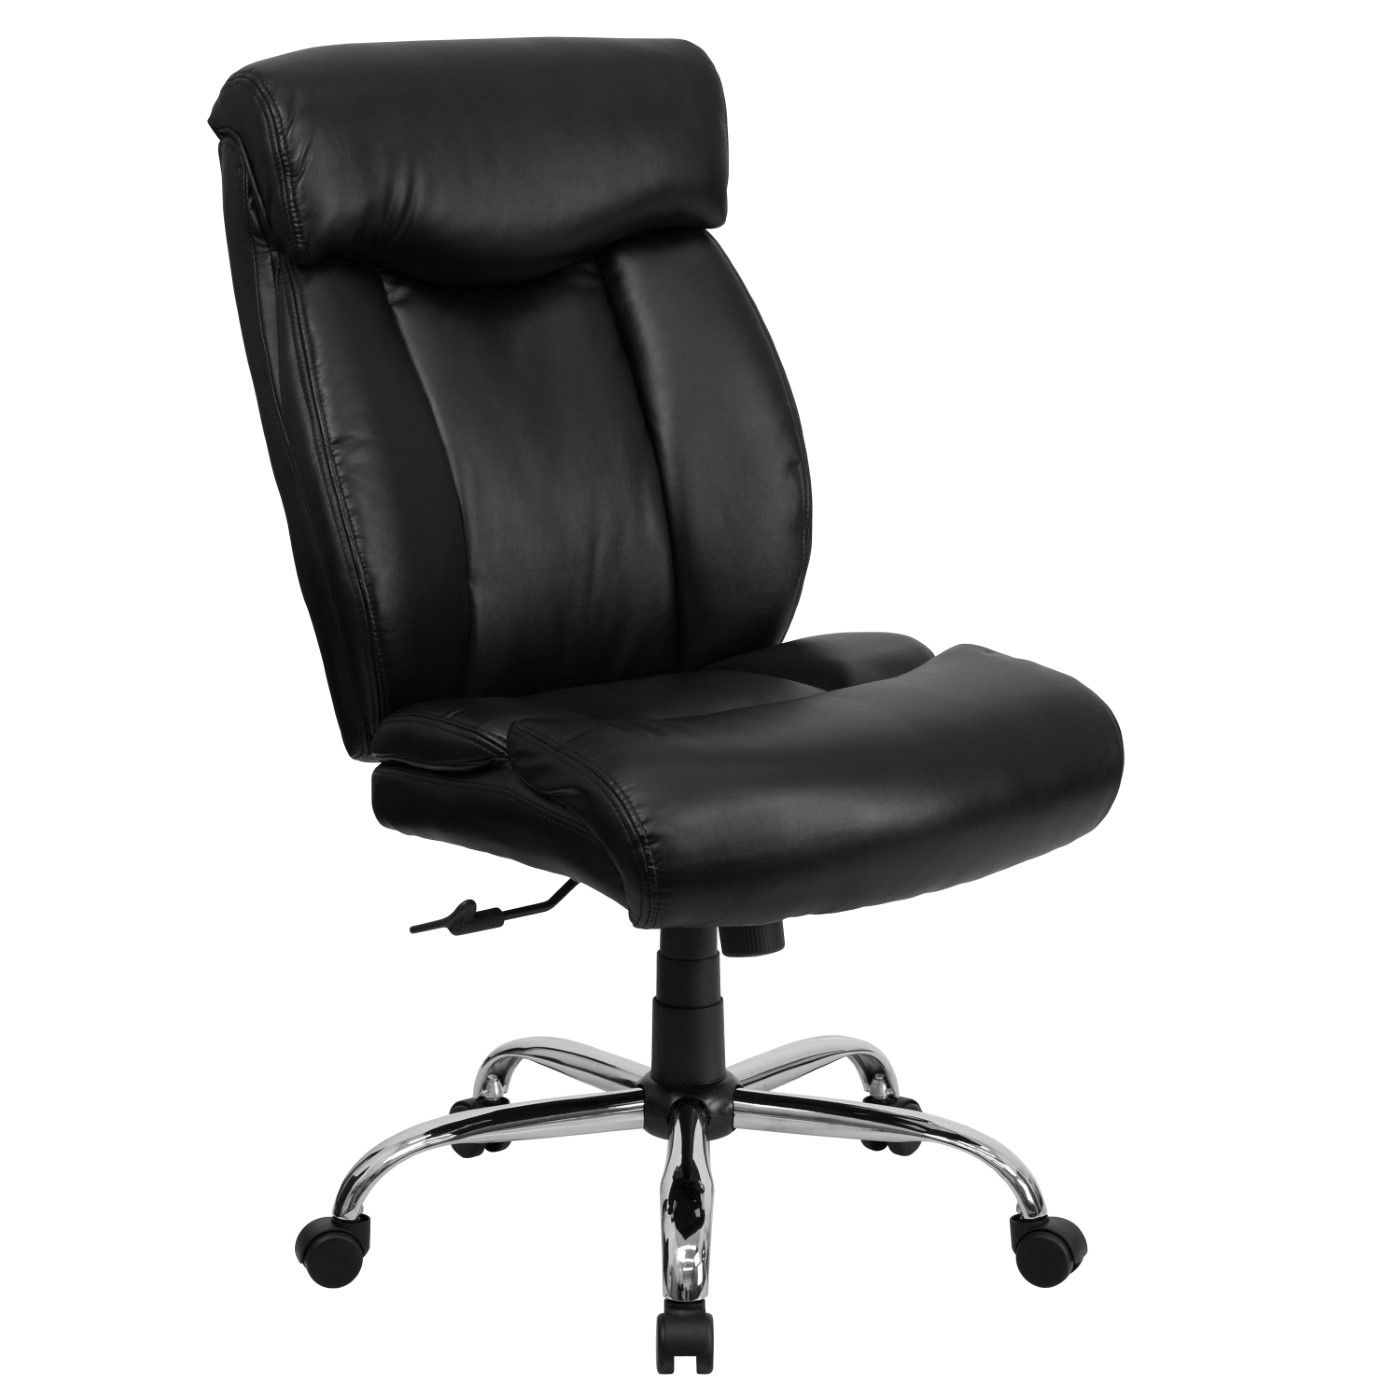 TOUGH ENOUGH Series Big & Tall 400 lb. Rated Black LeatherSoft Executive Ergonomic Office Chair with Full Headrest